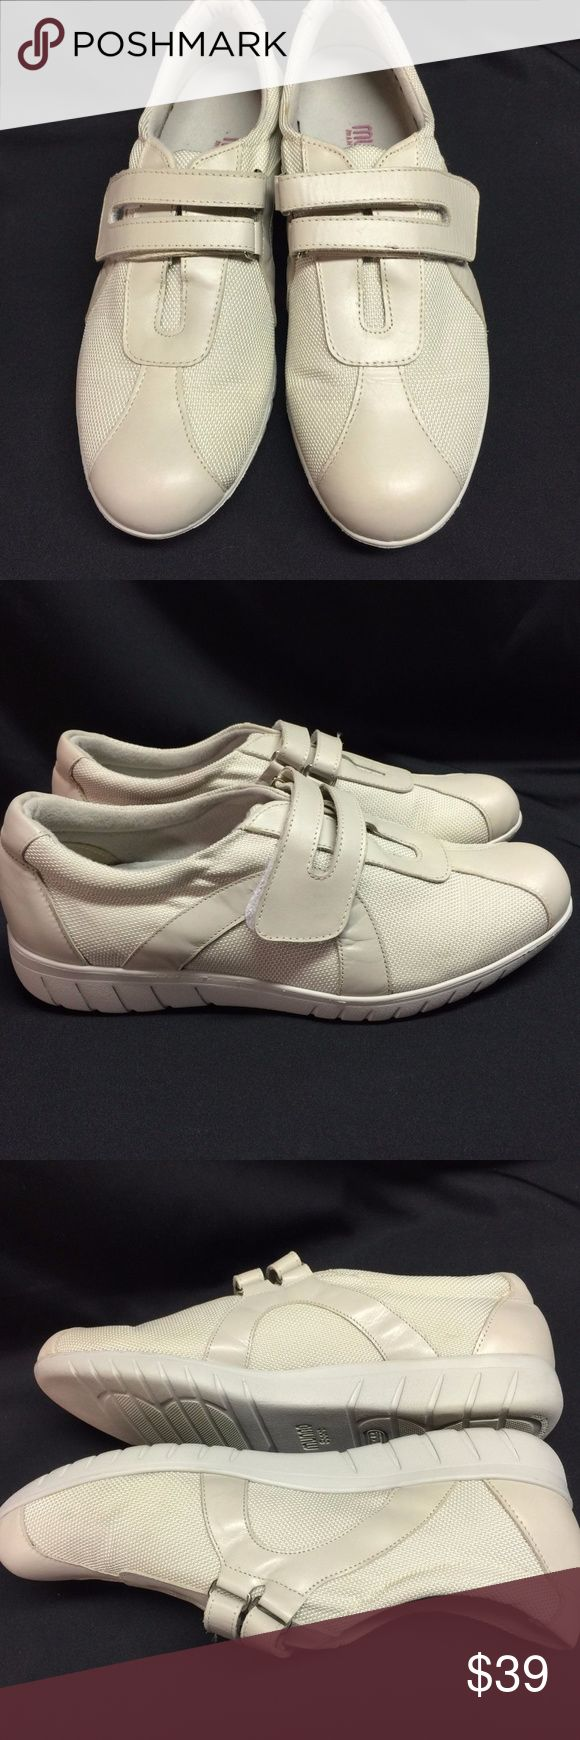 Munro Jewel Sneaker Casual Walking Shoe Sz 9M Munro Jewel Sneaker Casual Walking Shoe Oat Cream  Womens Sz 9M Color is called Oat Cream and is a two toned beige color  Condition:  No major flaws.  Minor signs of normal wear. Please see pics to see if they will work for you! Munro Shoes Sneakers